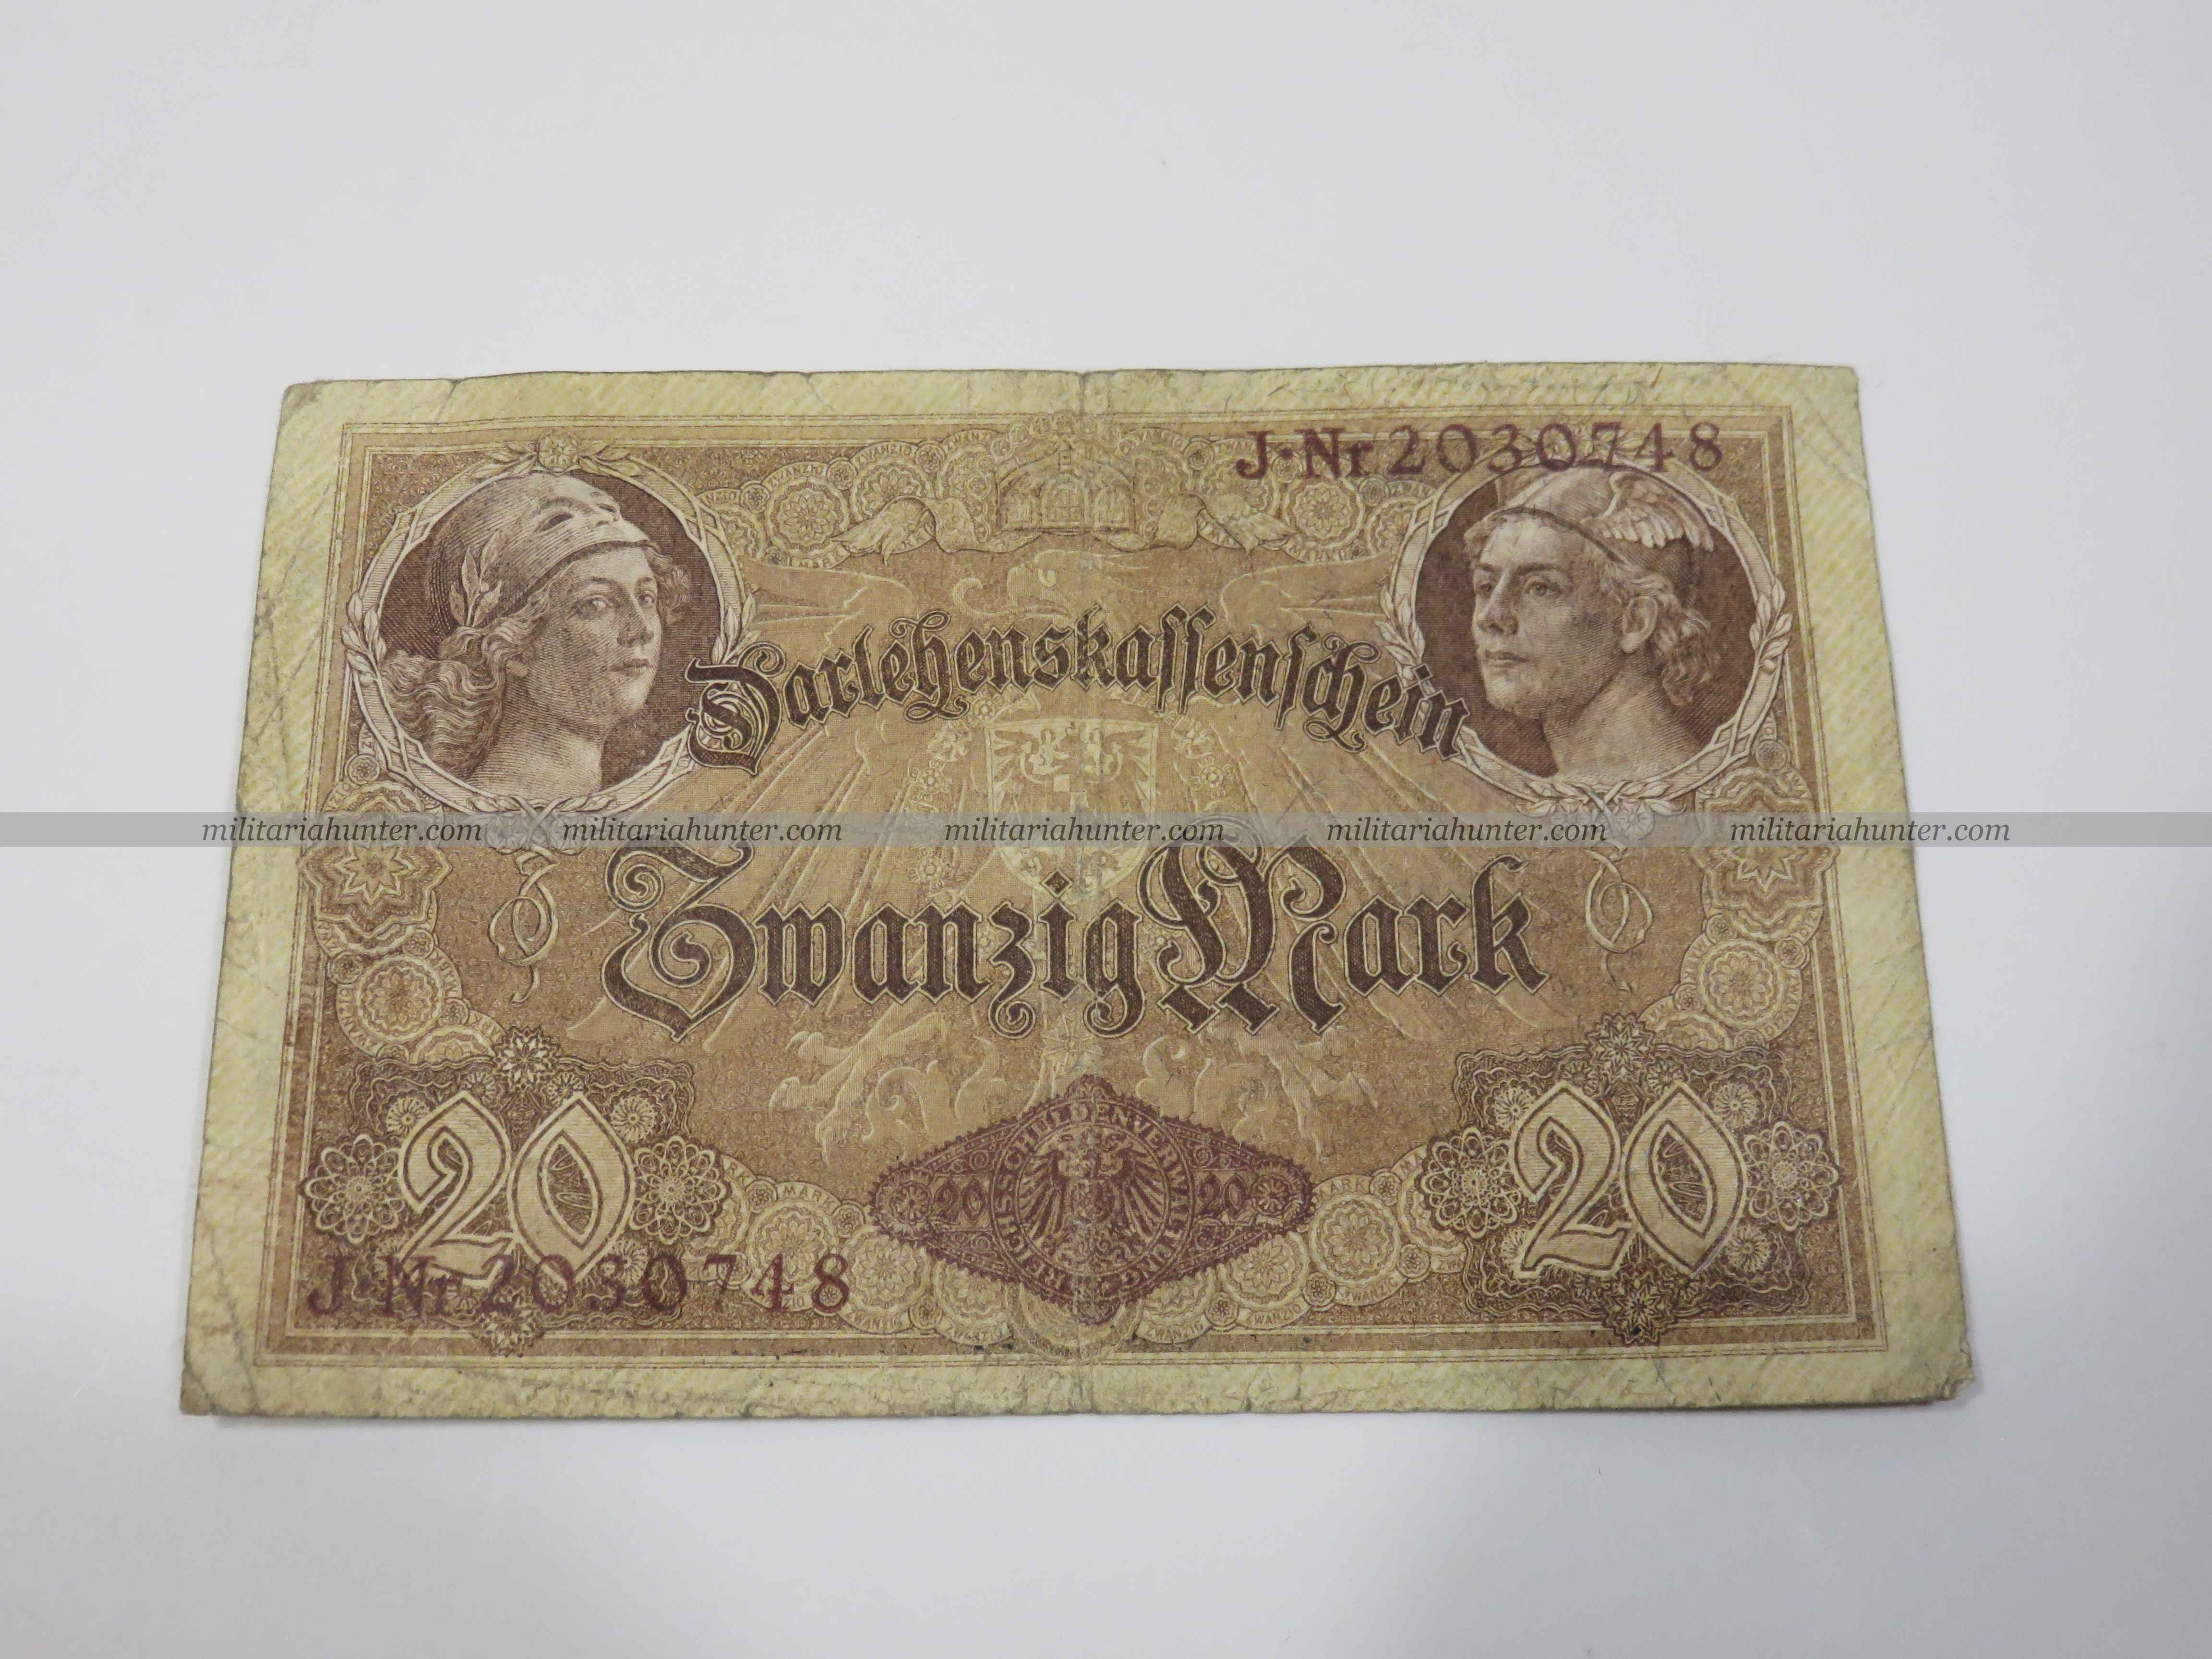 militaria : ww1 german banknote 20 Mark 1914 - billet allemand ww1 de 20 Mark